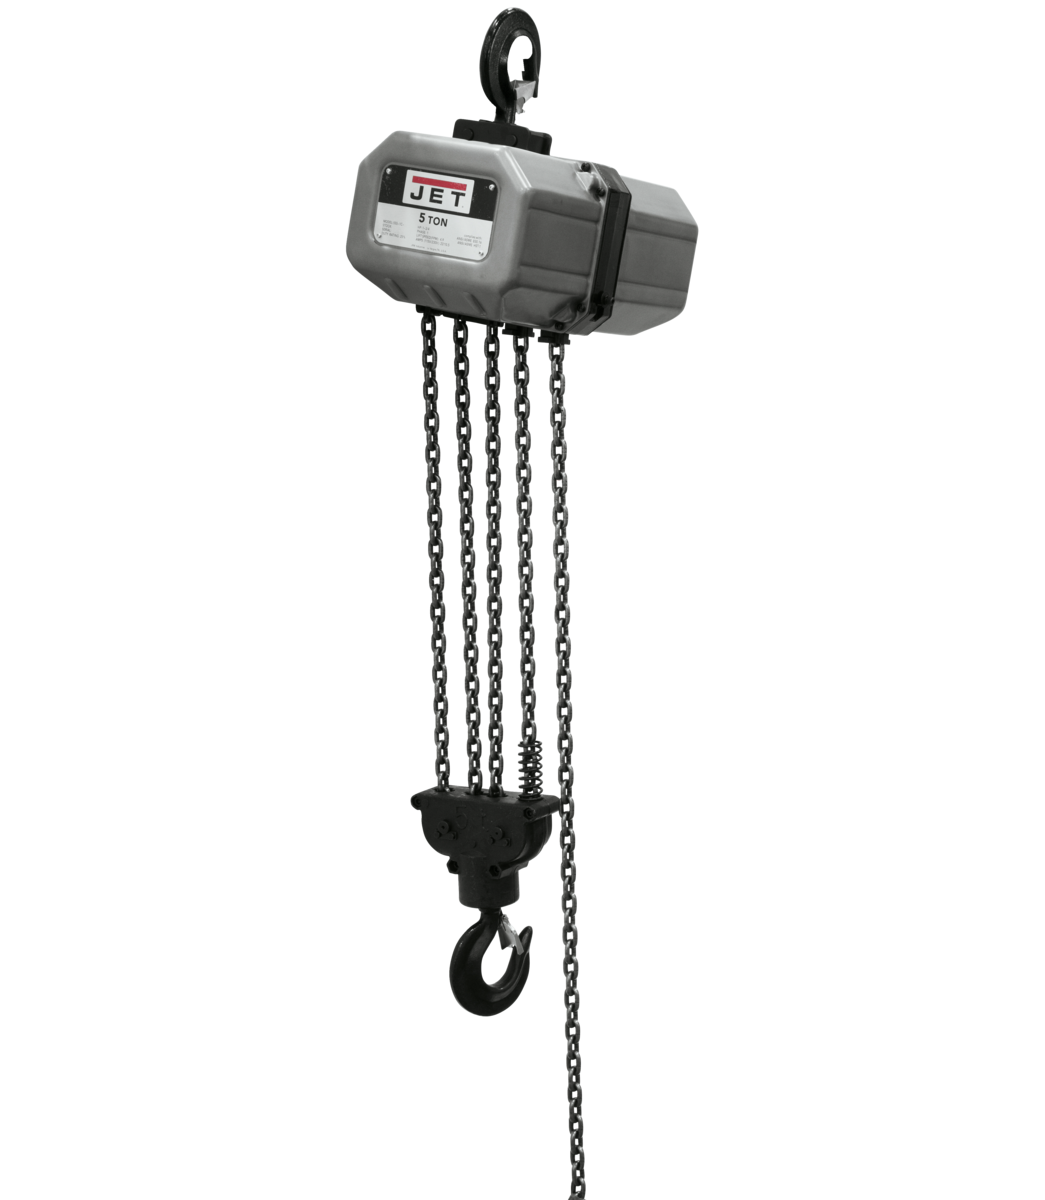 5SS-3C-10, 5-Ton Electric Chain Hoist 3-Phase 10' lift